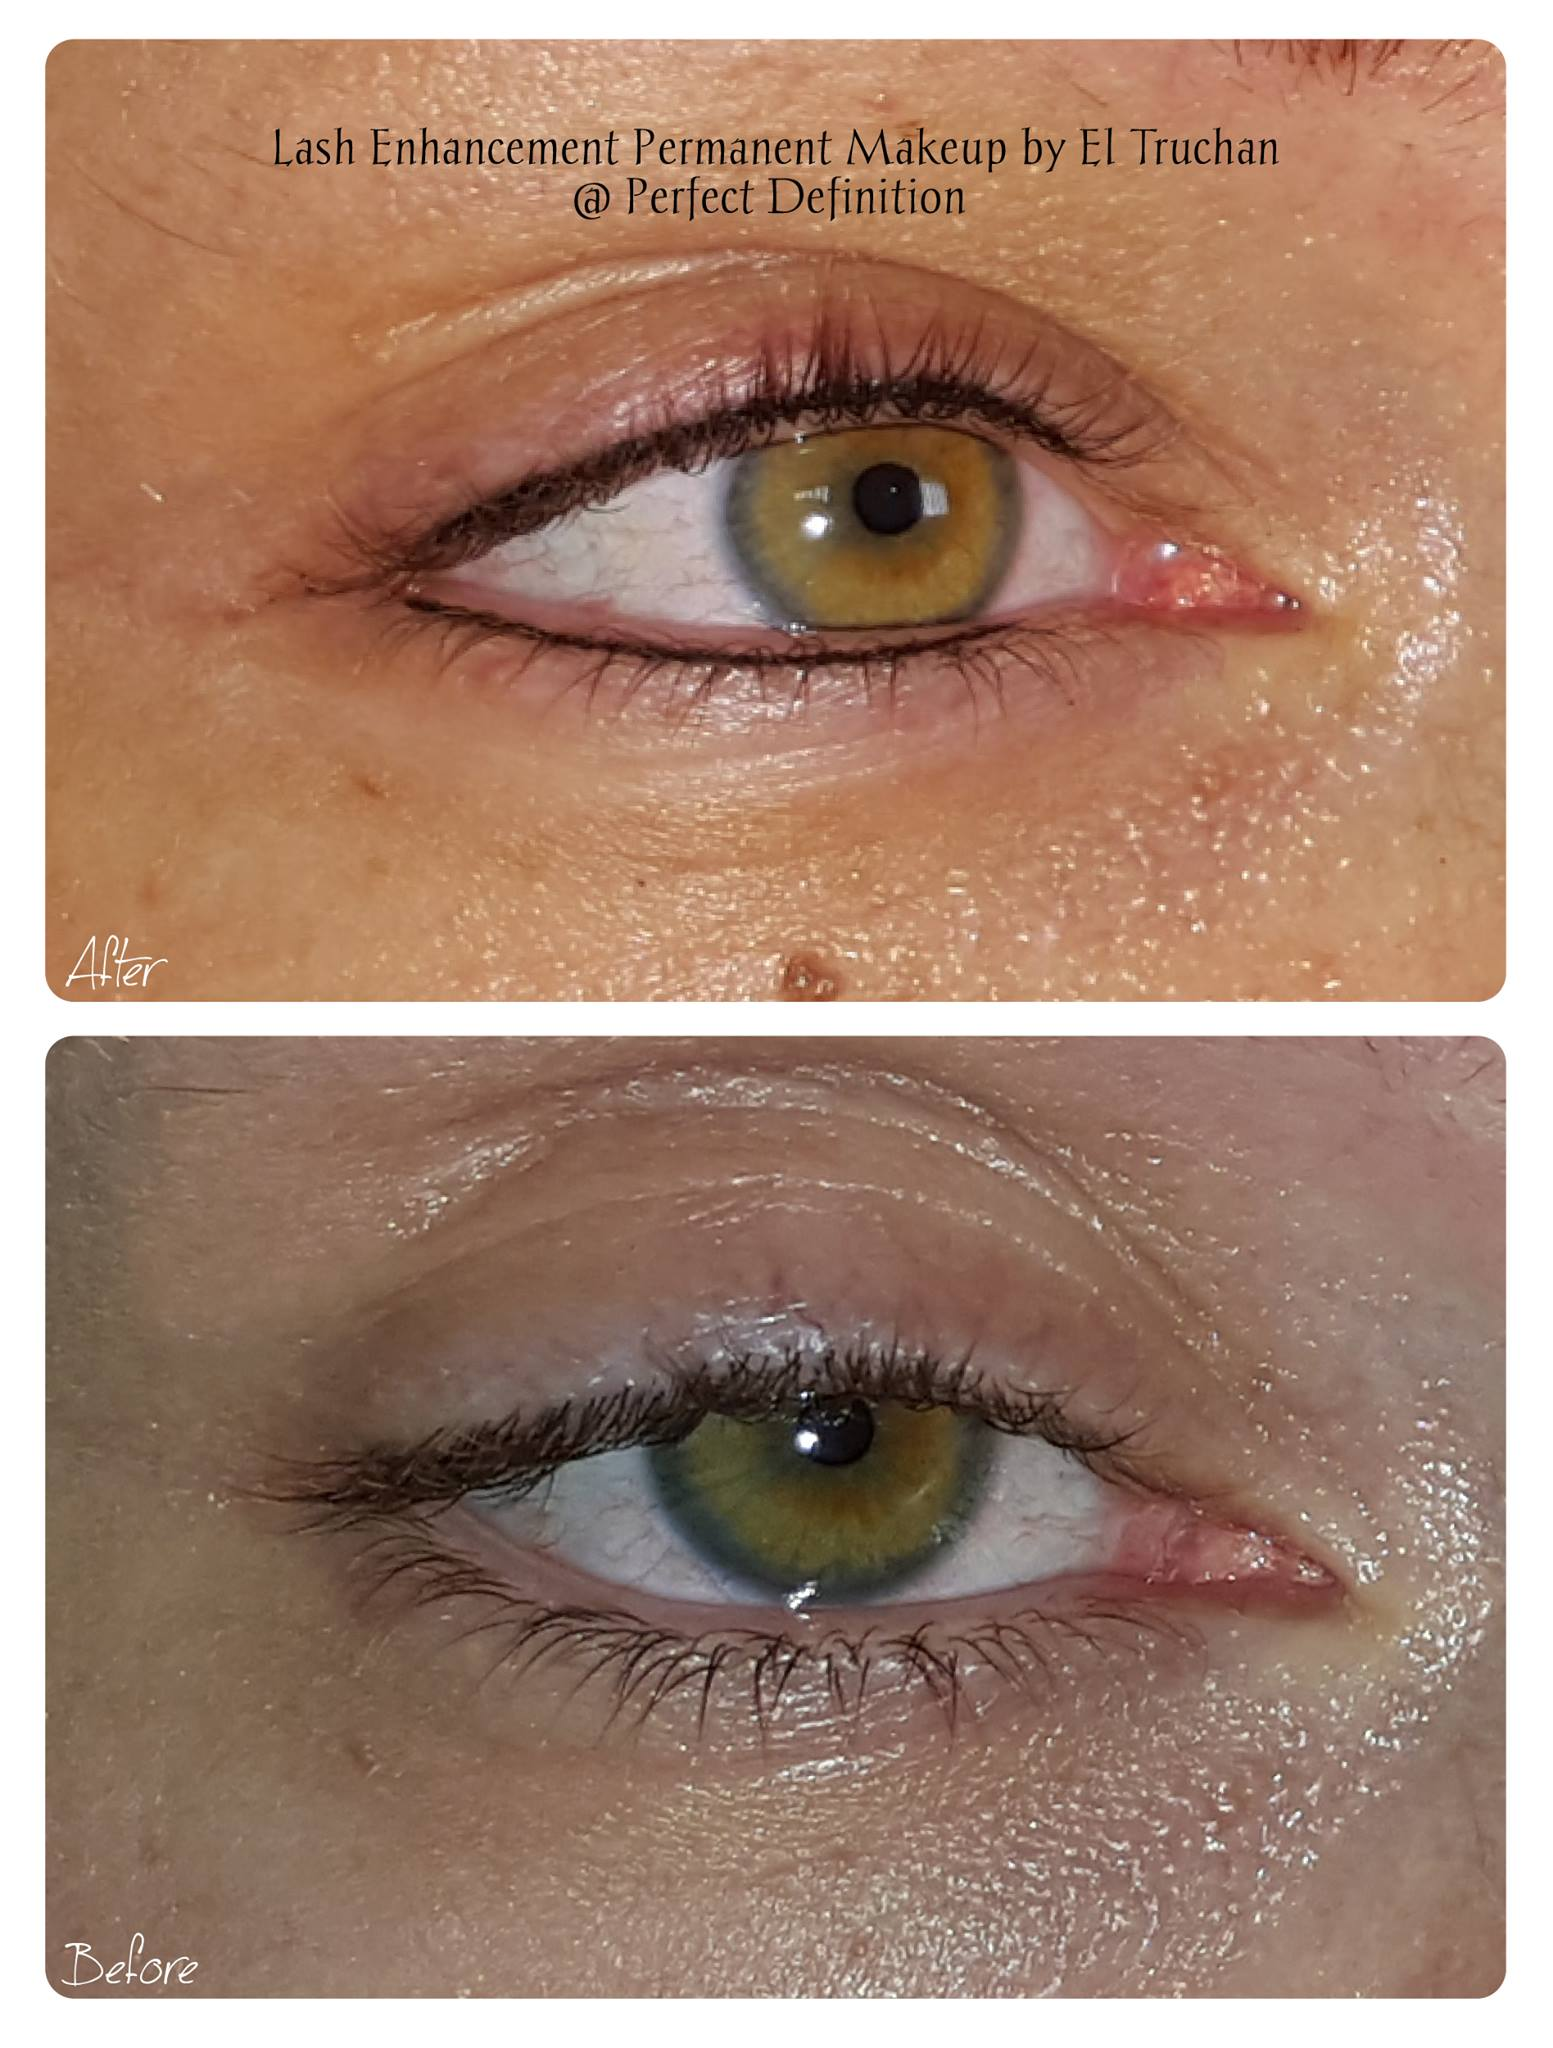 Lash Enhancement Permanent Makeup